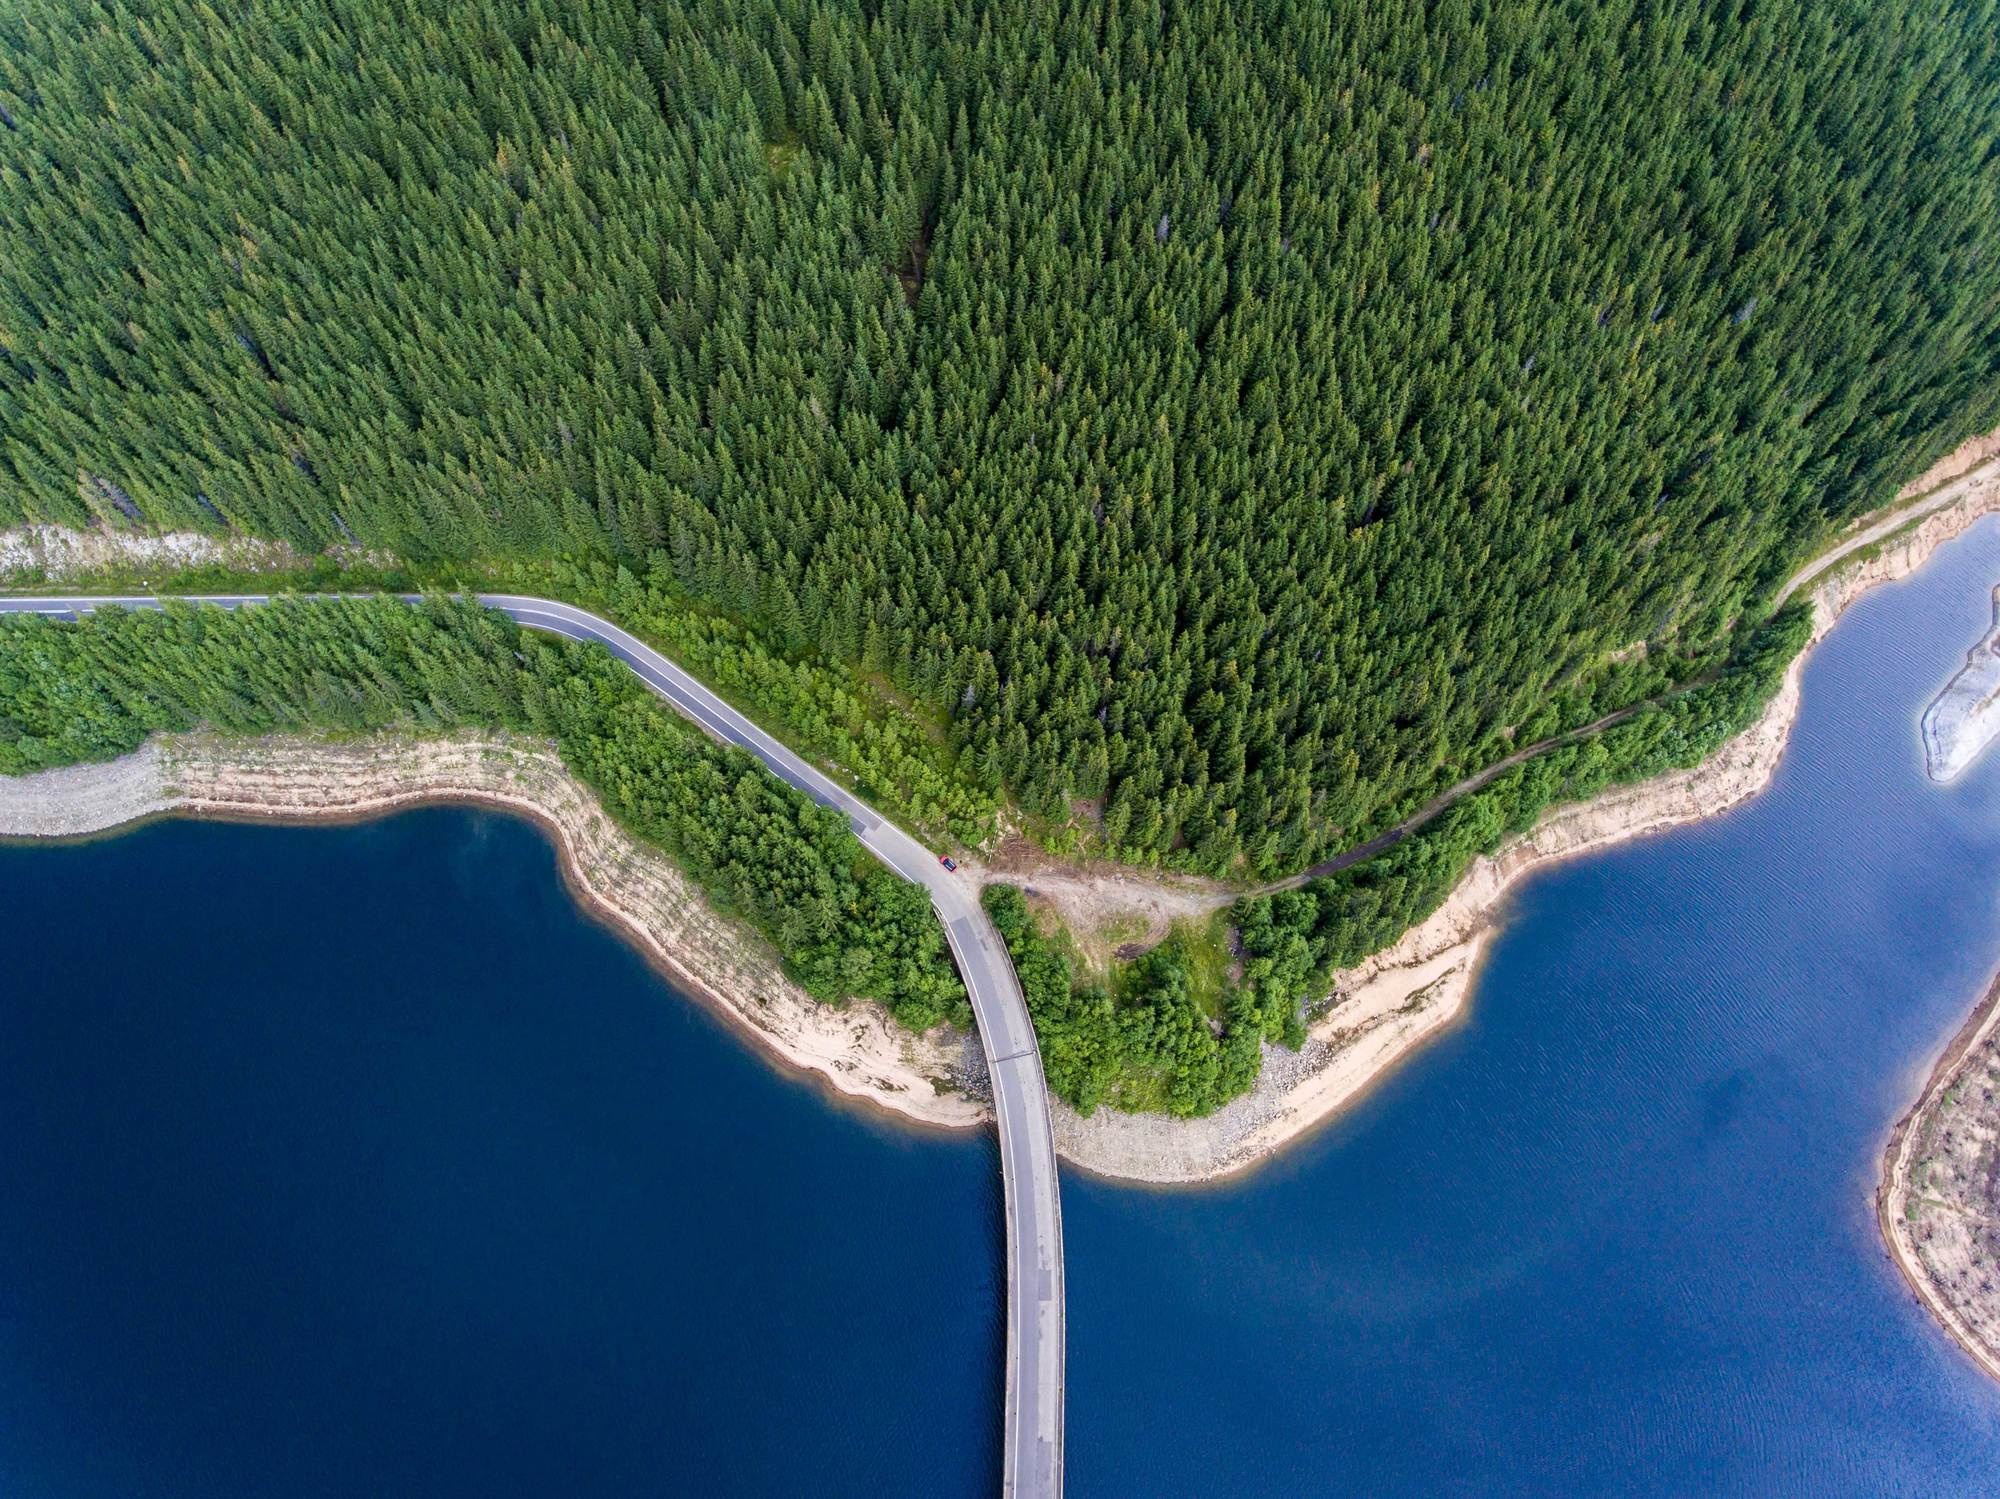 Arial view of a road bridge over a lake and mountain forest